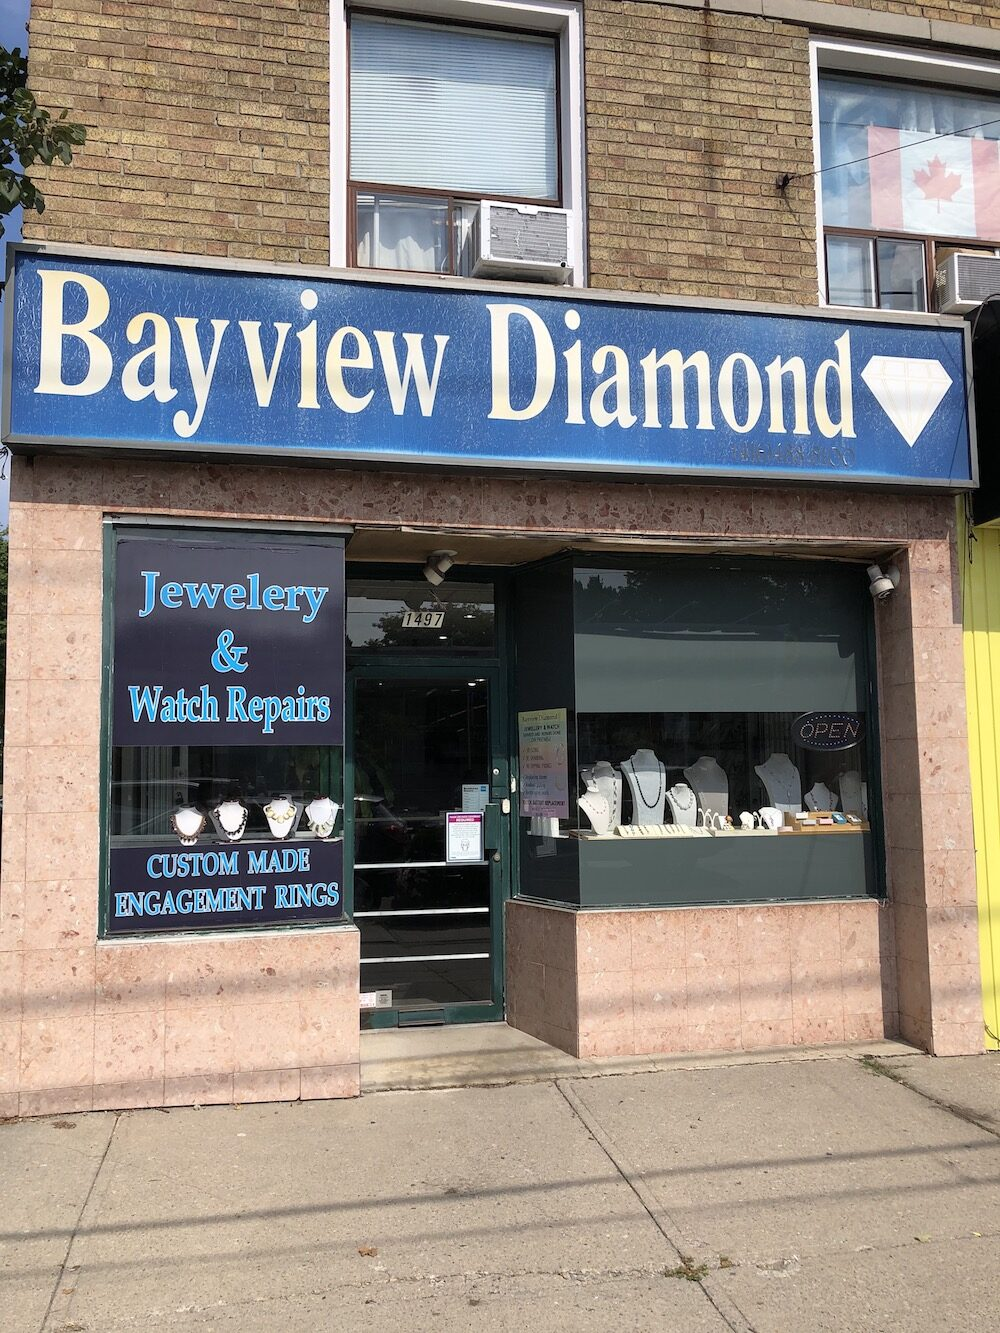 Bayview diamond 1.JPG